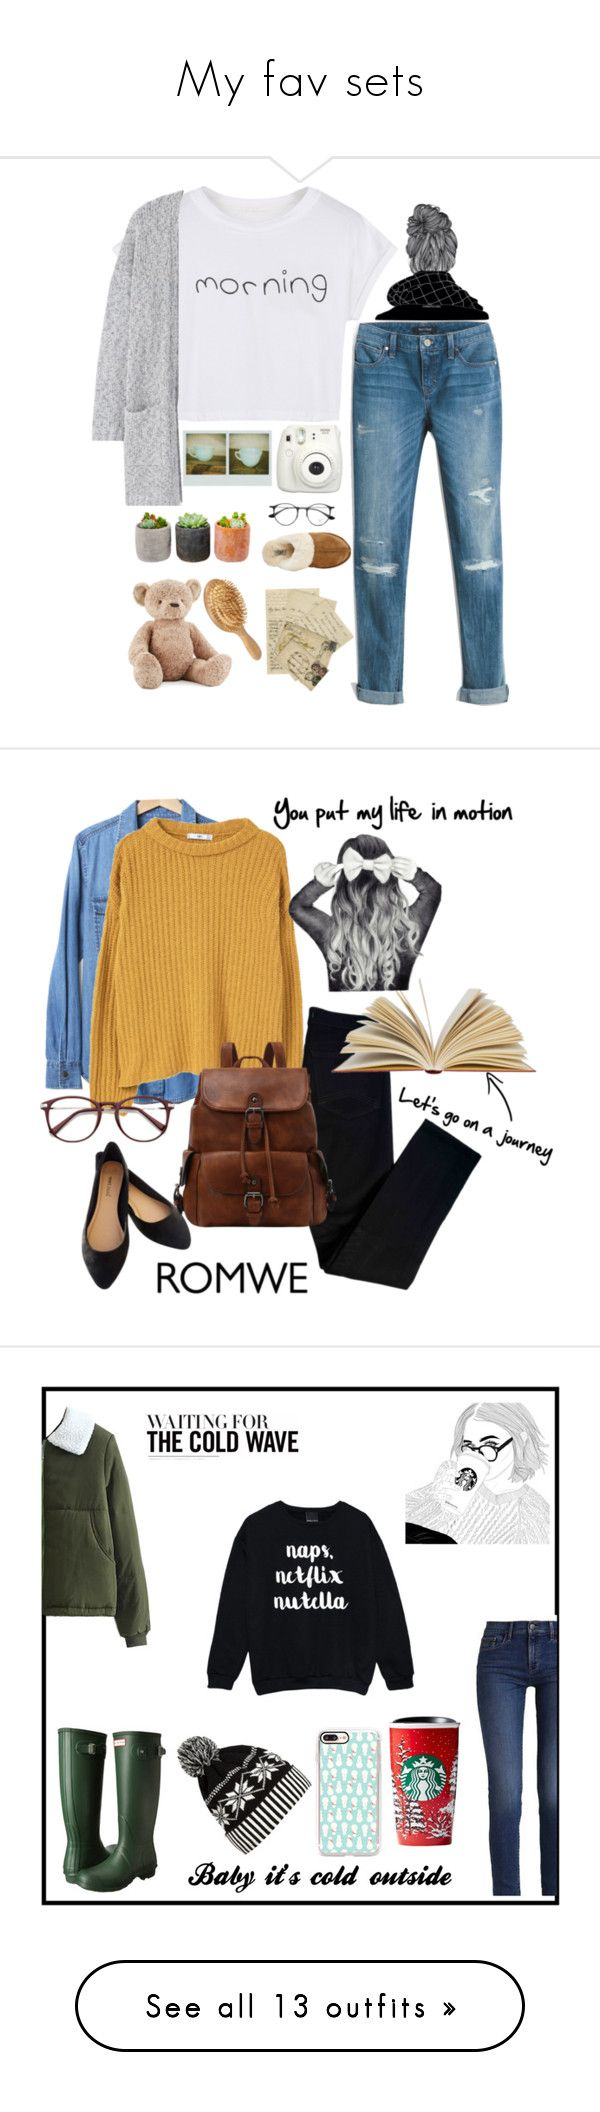 """""""My fav sets"""" by grantaire1832 ❤ liked on Polyvore featuring White House Black Market, WithChic, MANGO, Ray-Ban, Fujifilm, UGG, Shop Succulents, Jellycat, Gap and J Brand"""